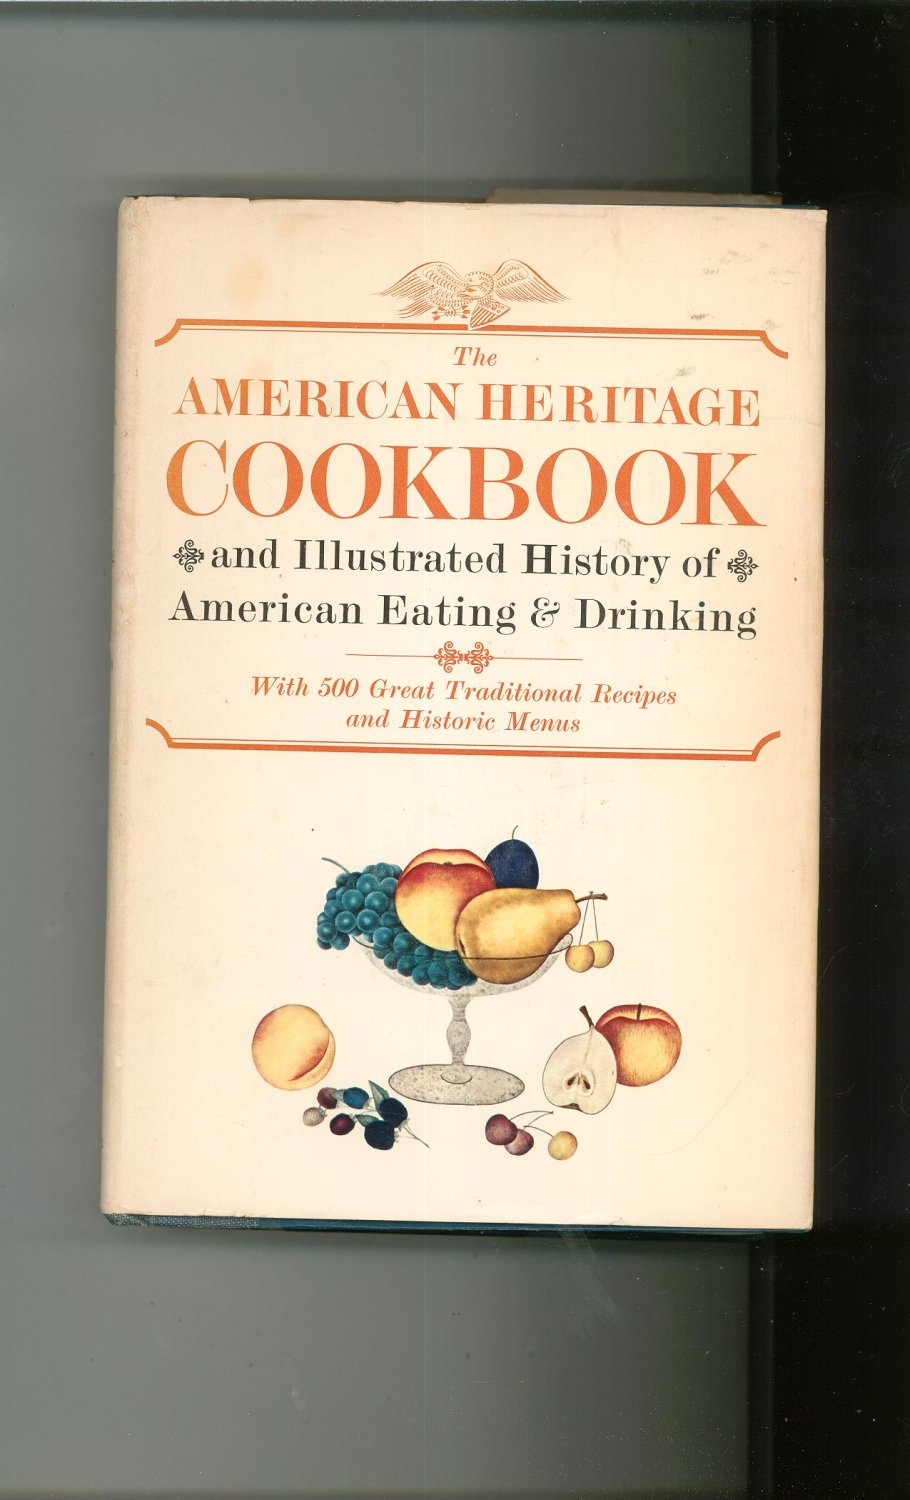 Vintage The American Heritage Cookbook 1964 500 Recipes Historic Menus